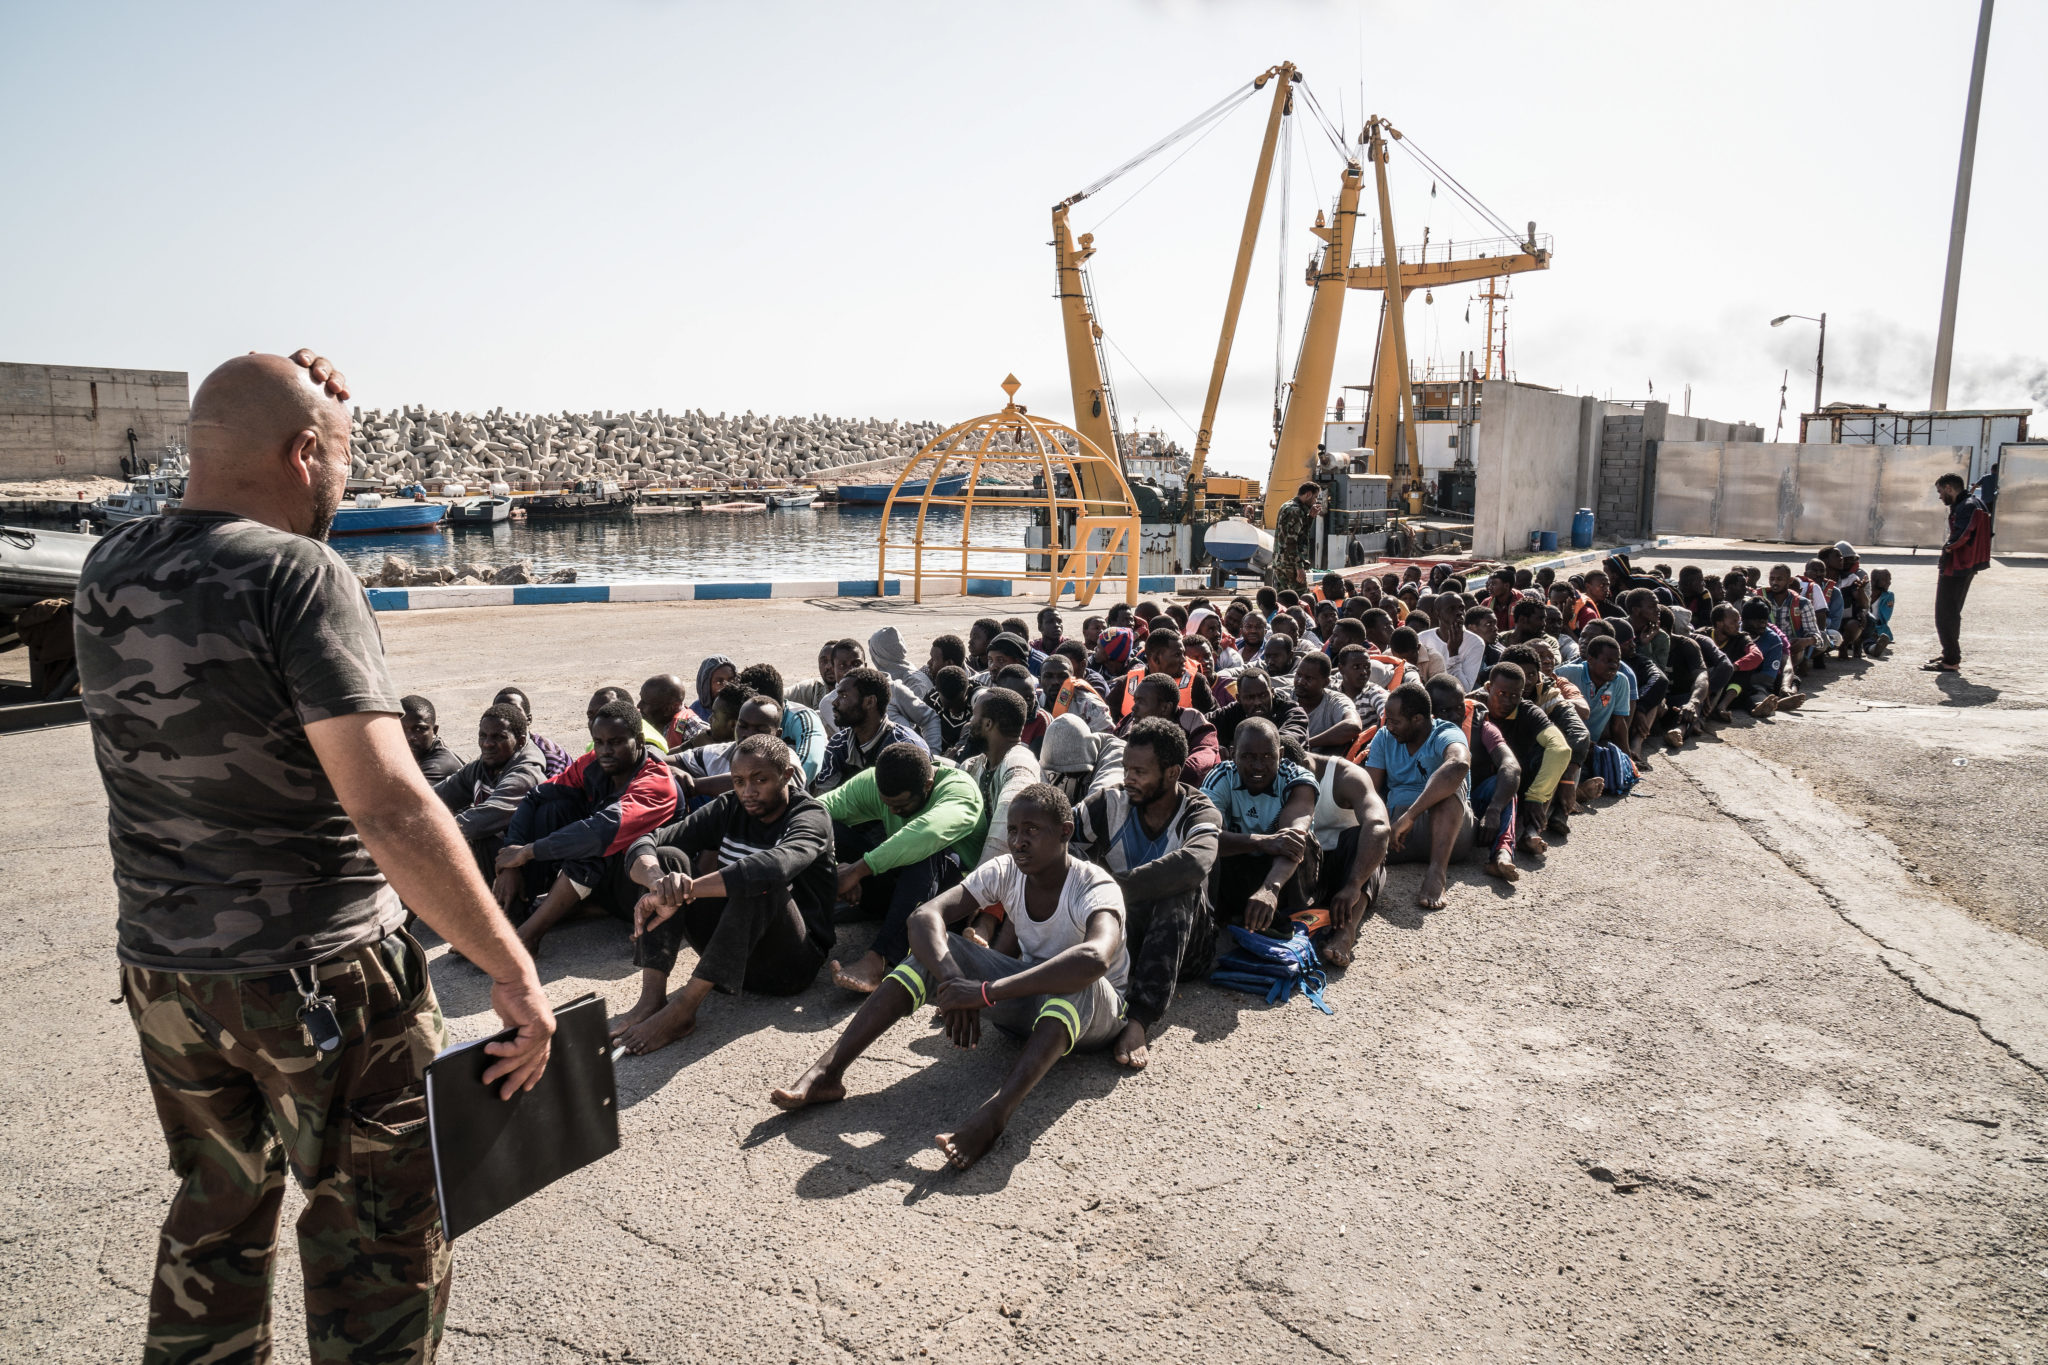 Libya: Shameful EU policies fuel surge in detention of migrants and refugees